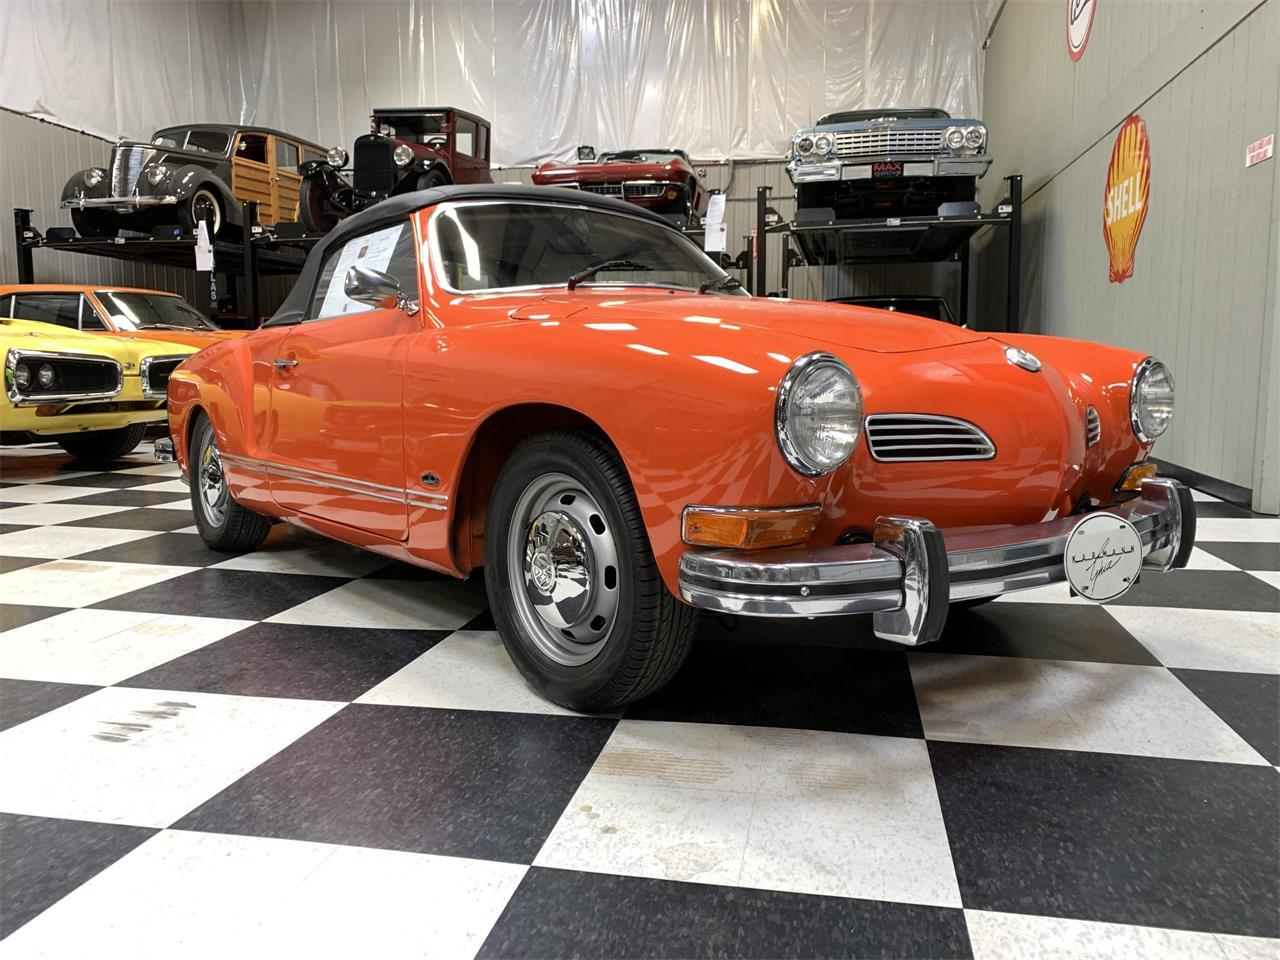 1974 Volkswagen Karmann Ghia for sale in Pittsburgh, PA – photo 2